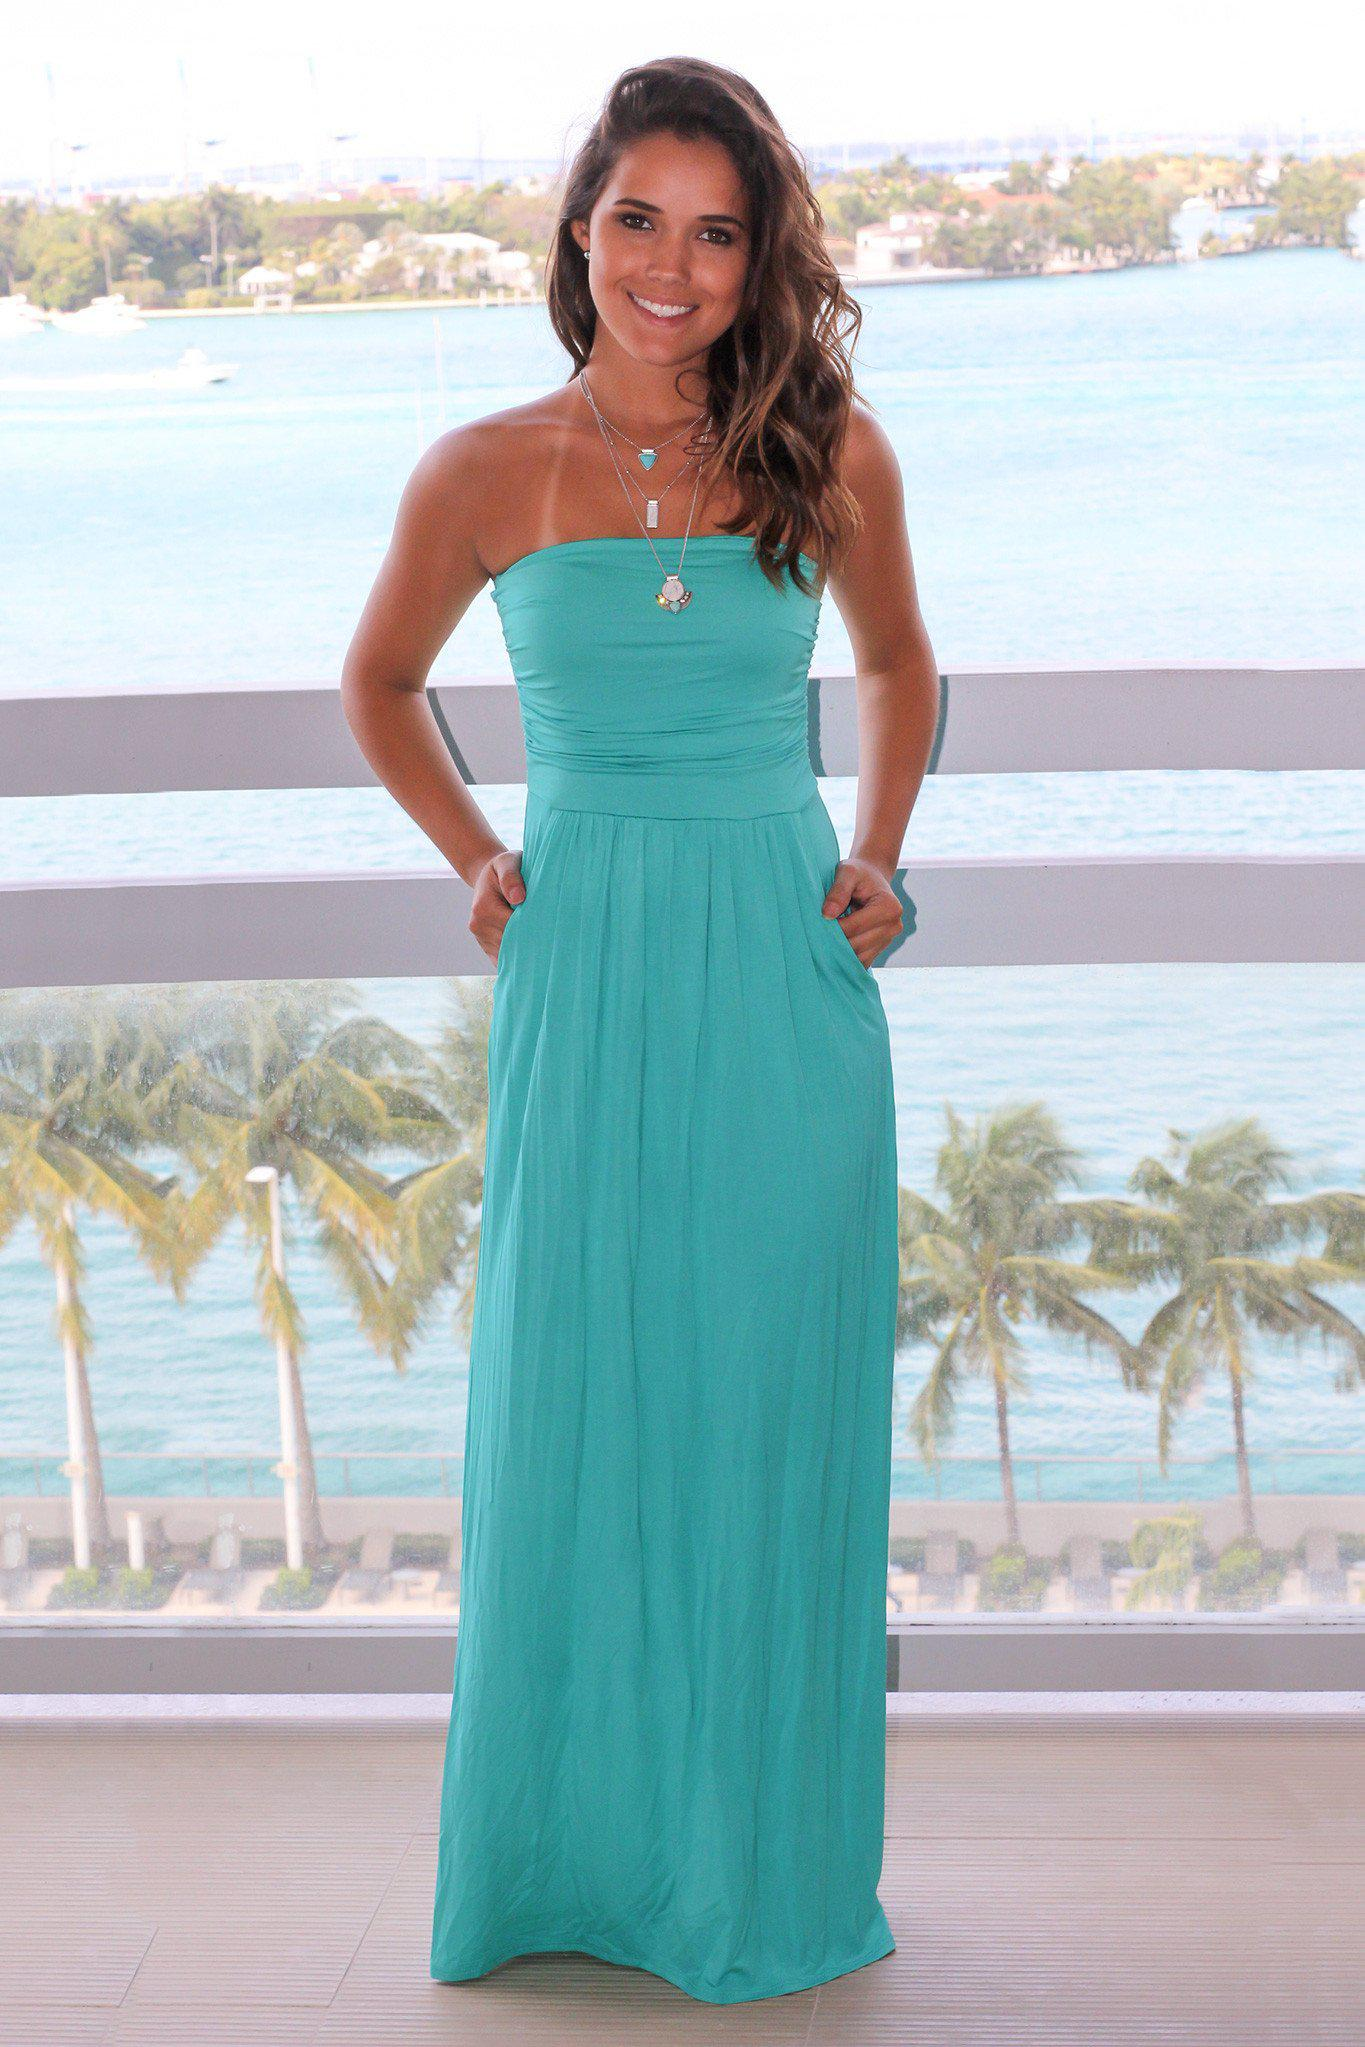 Strapless Turquoise Maxi Dress with Pockets   Maxi Dresses – Saved ...